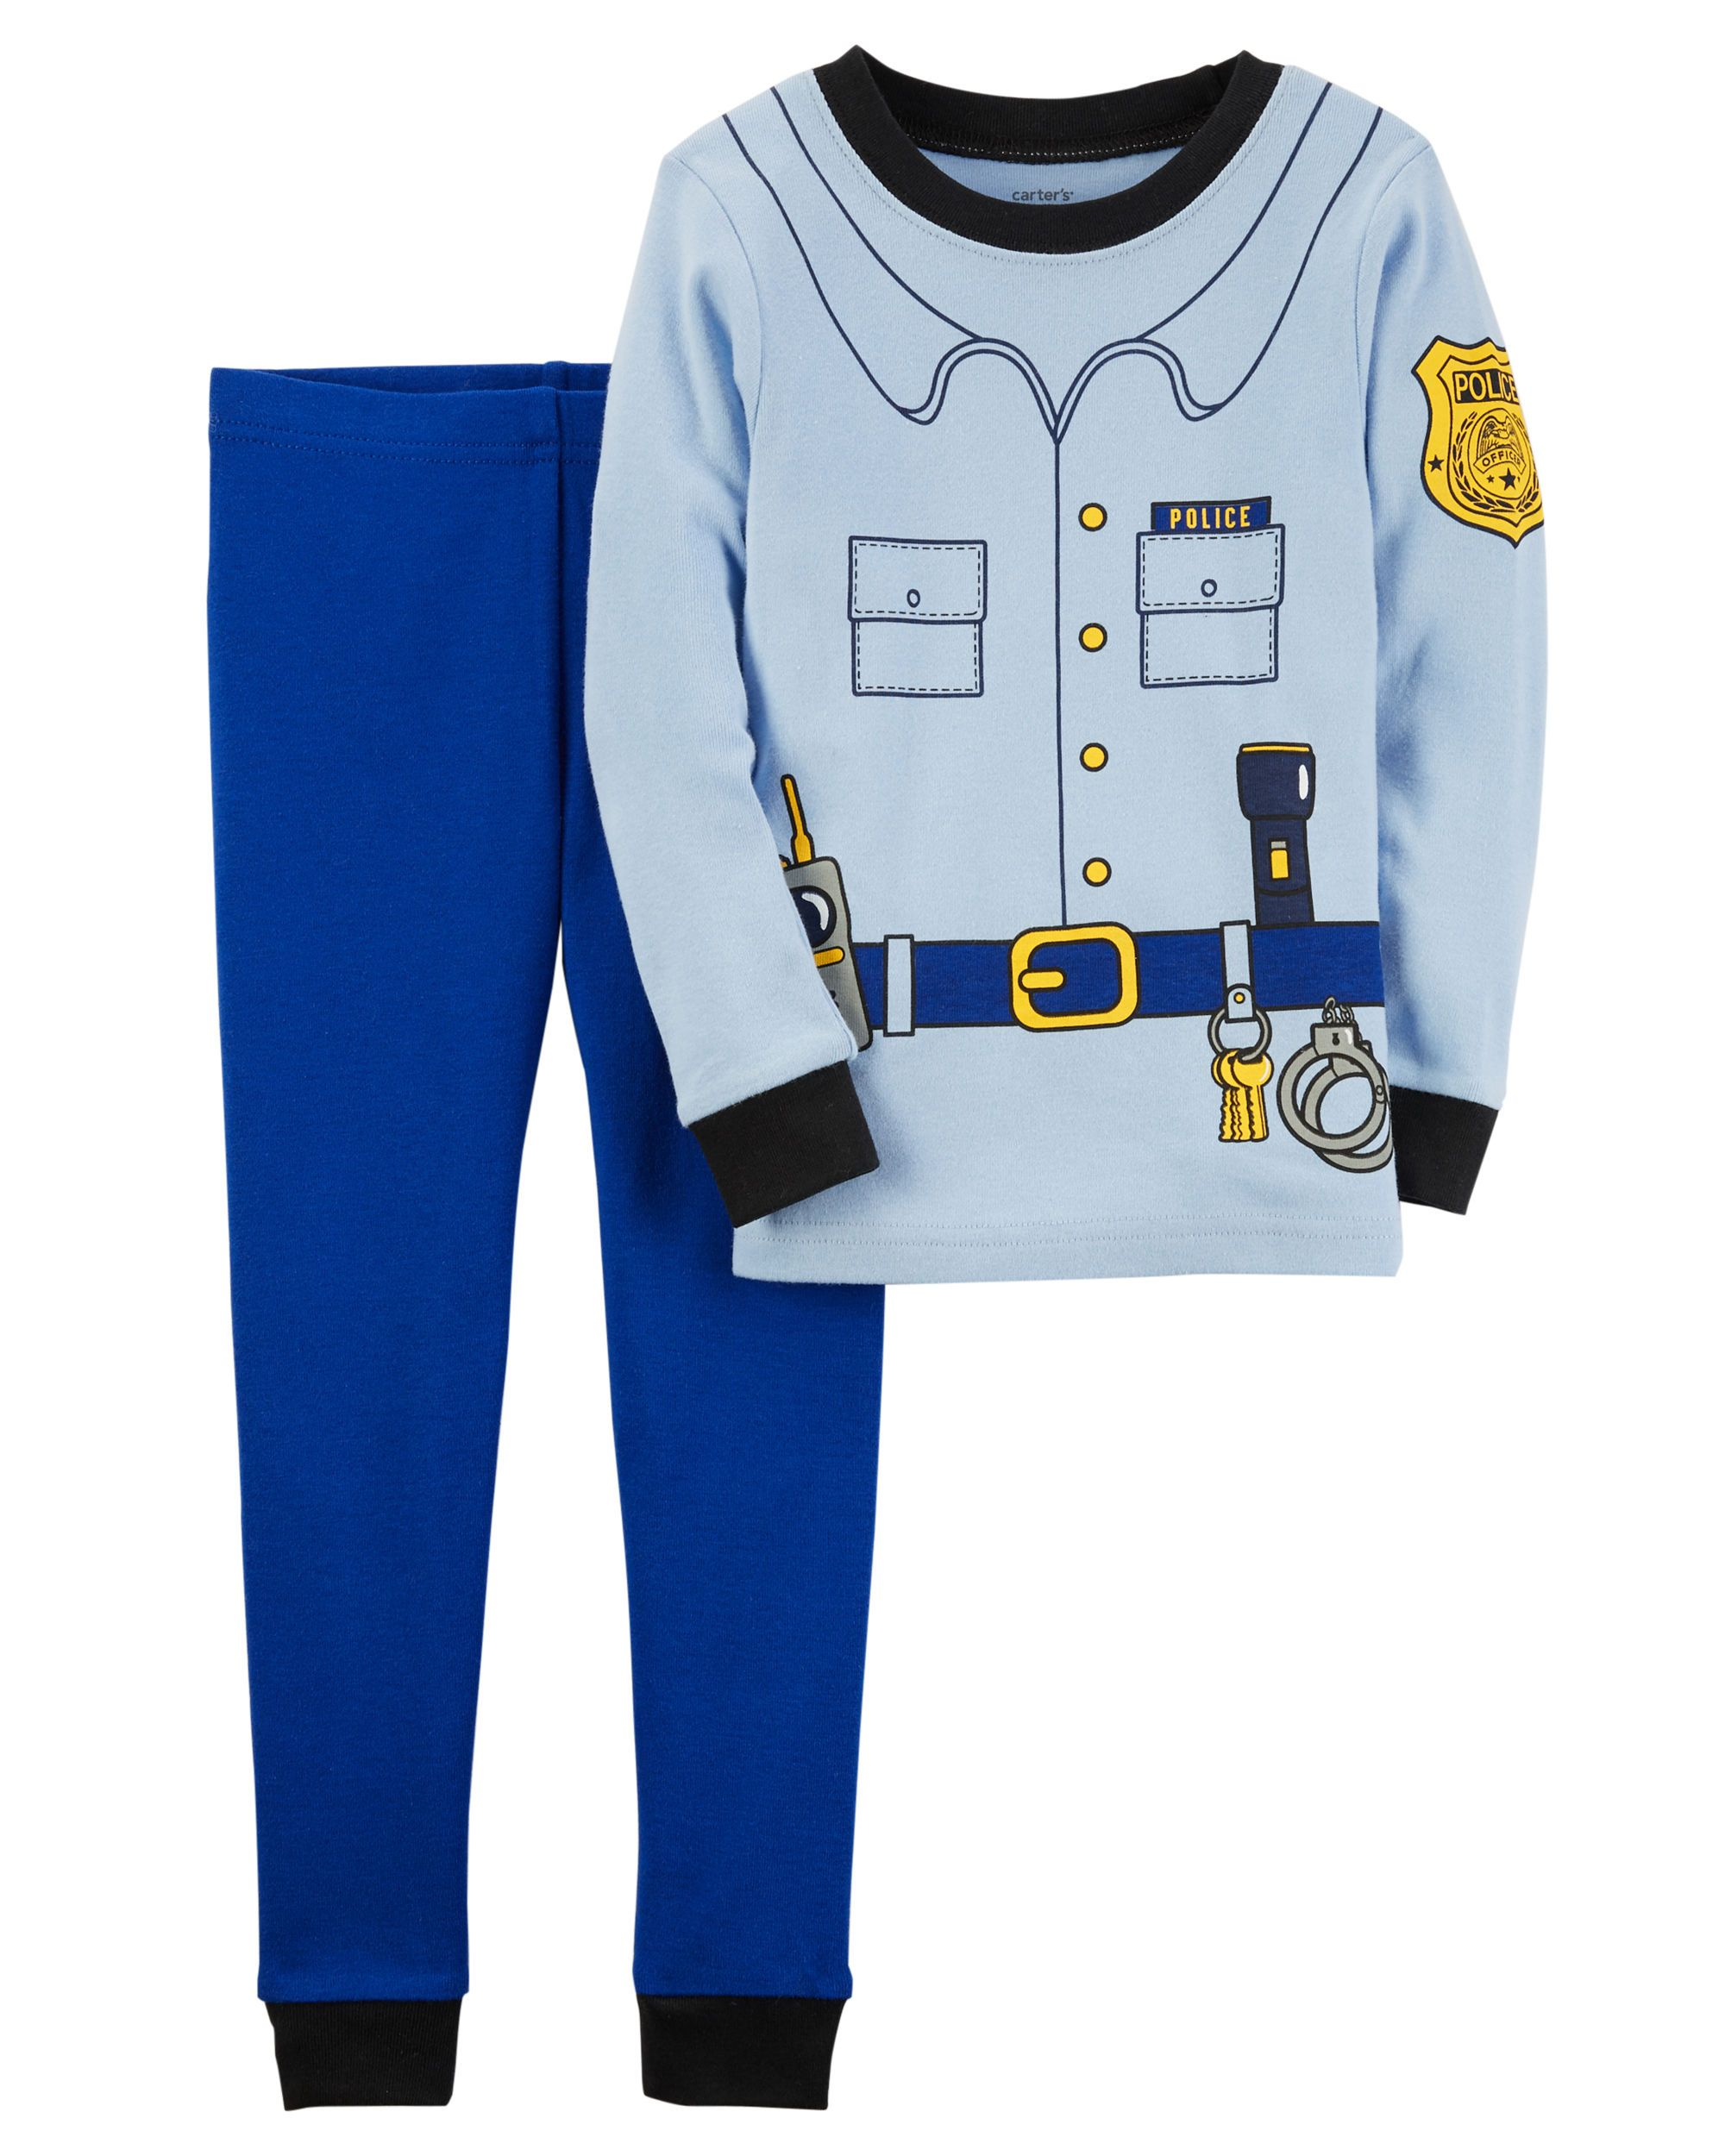 404b7b716 2-Piece Police Officer Snug Fit Cotton PJs